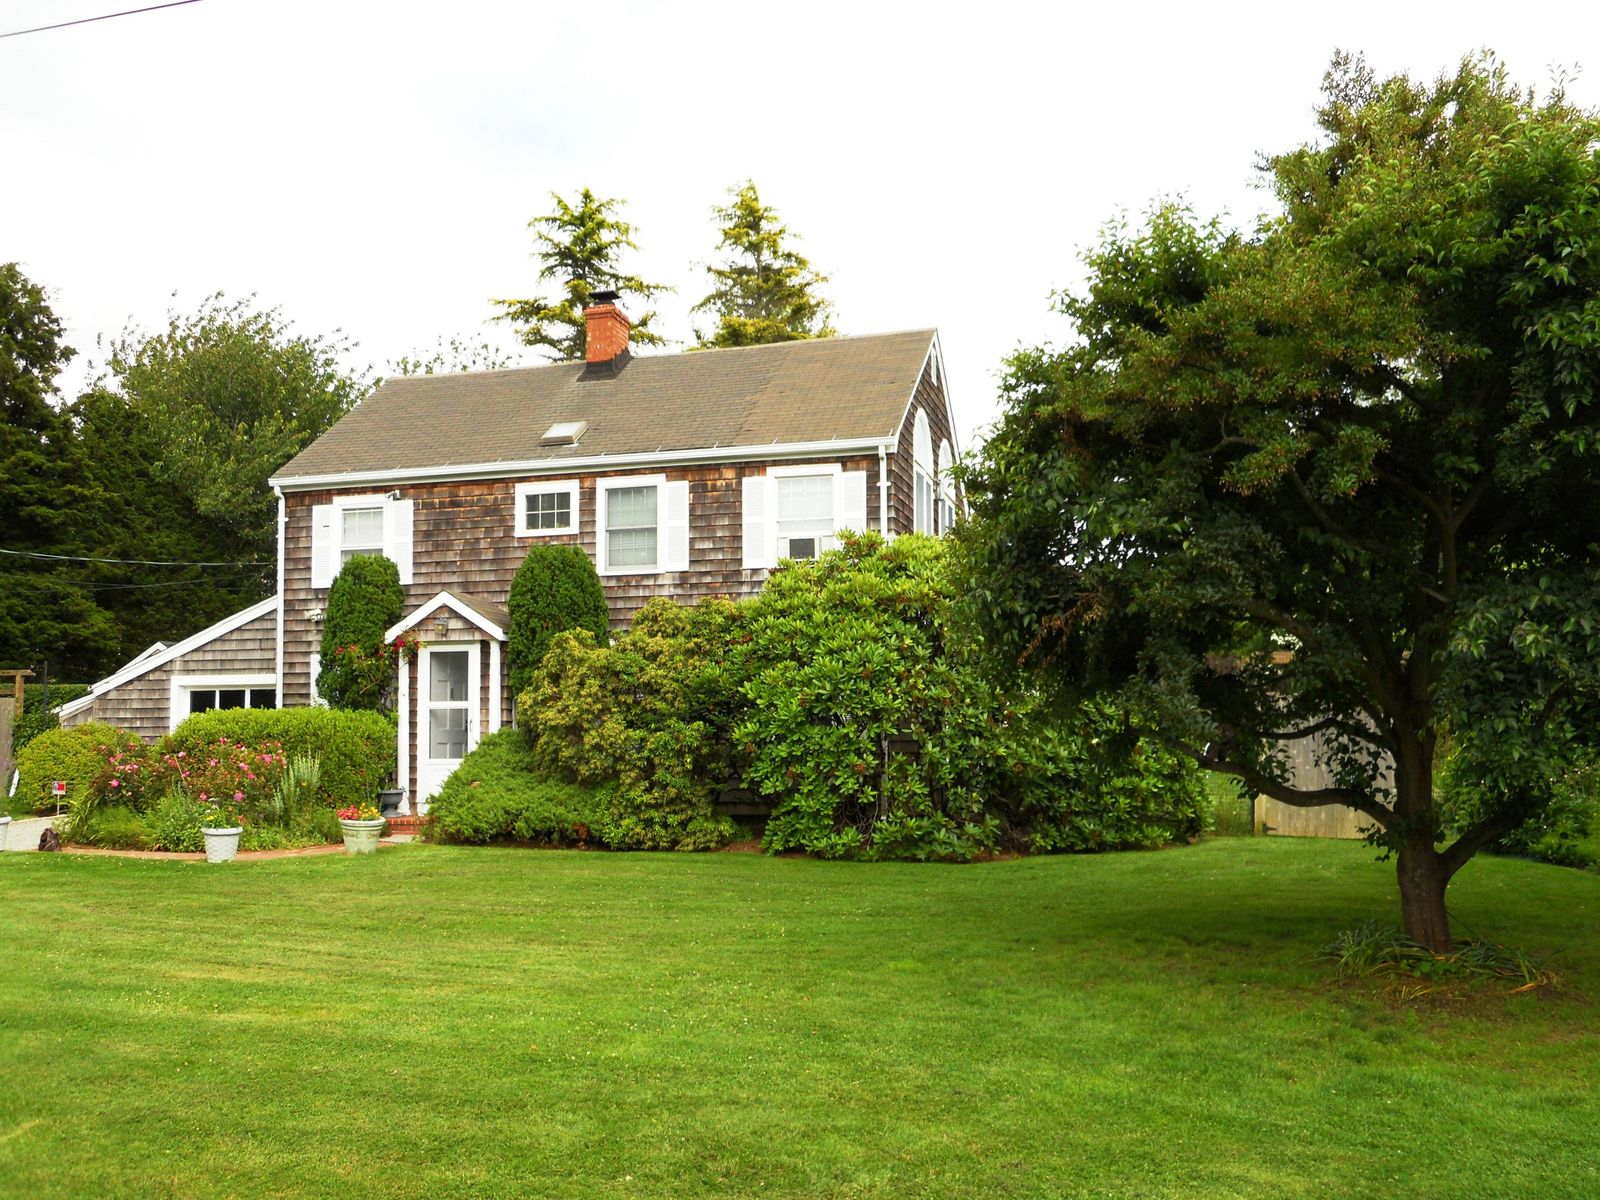 Late Summer Rental - Water Mill South